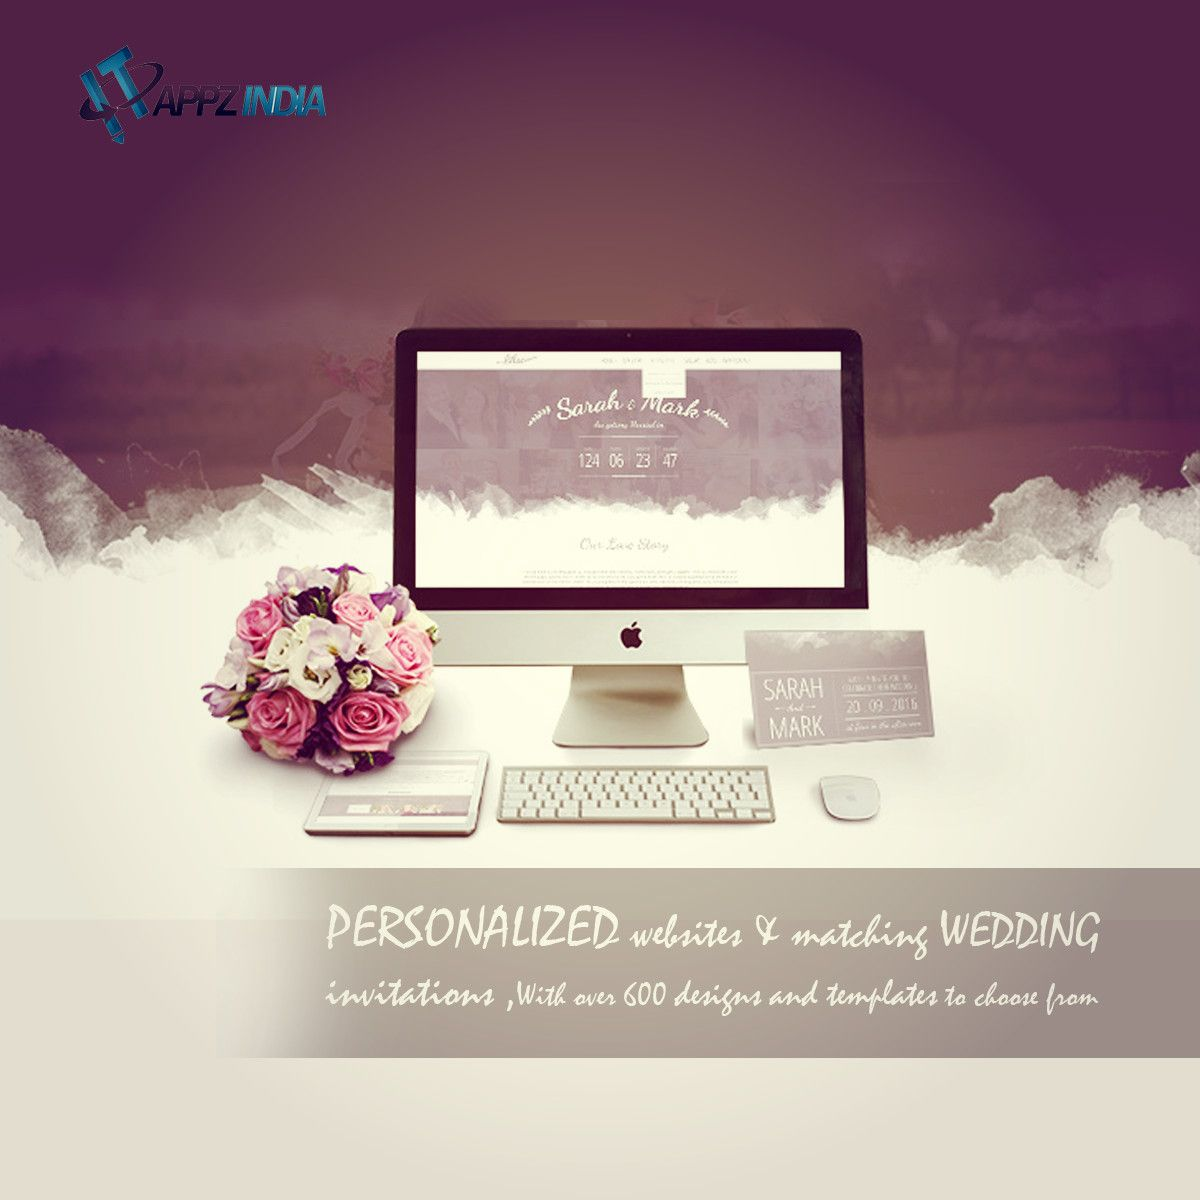 personalized websites matching wedding invitations with over 600